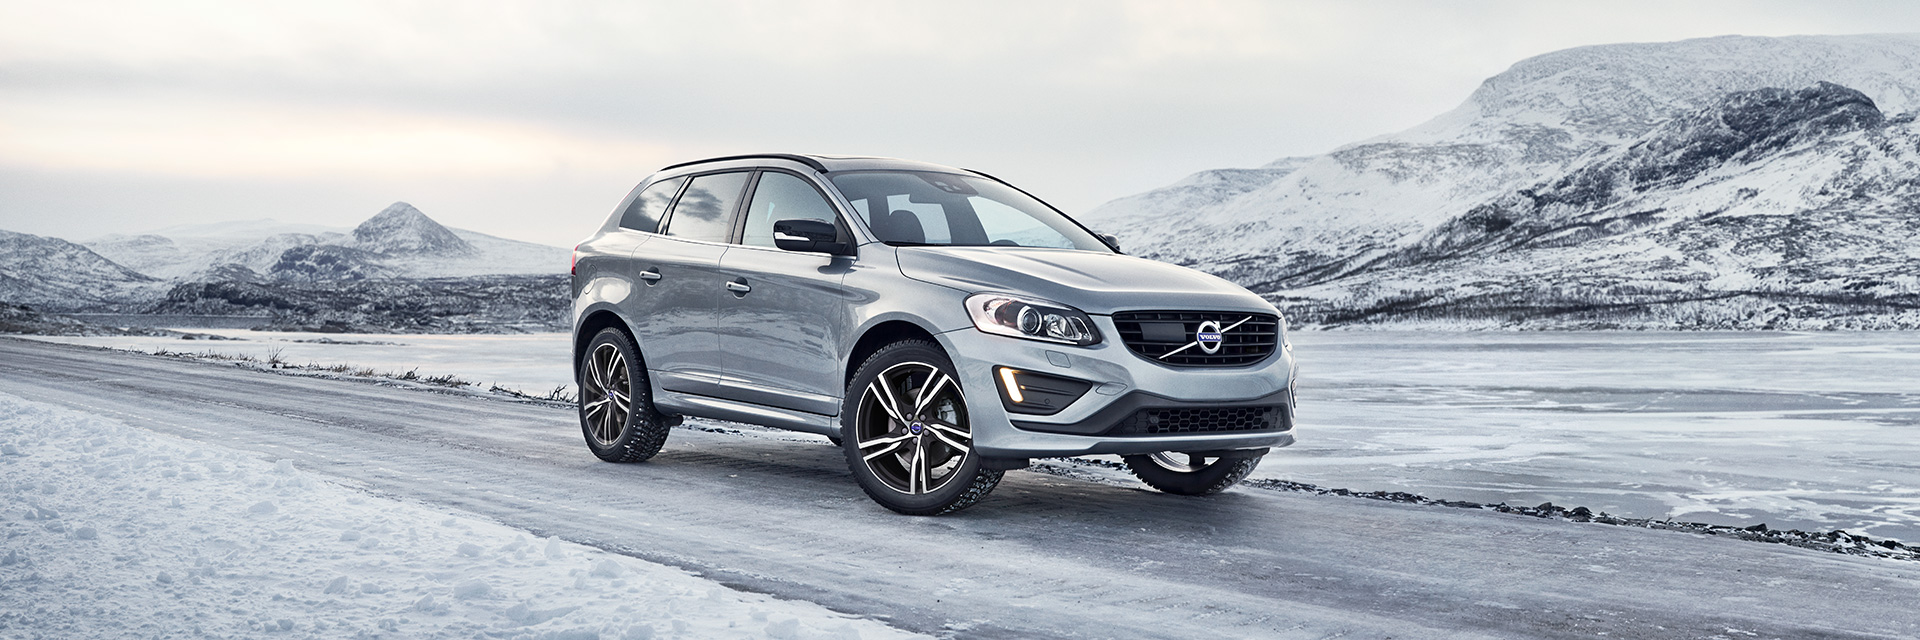 Volvo XC60 Classic 2017 - Made by Sweden